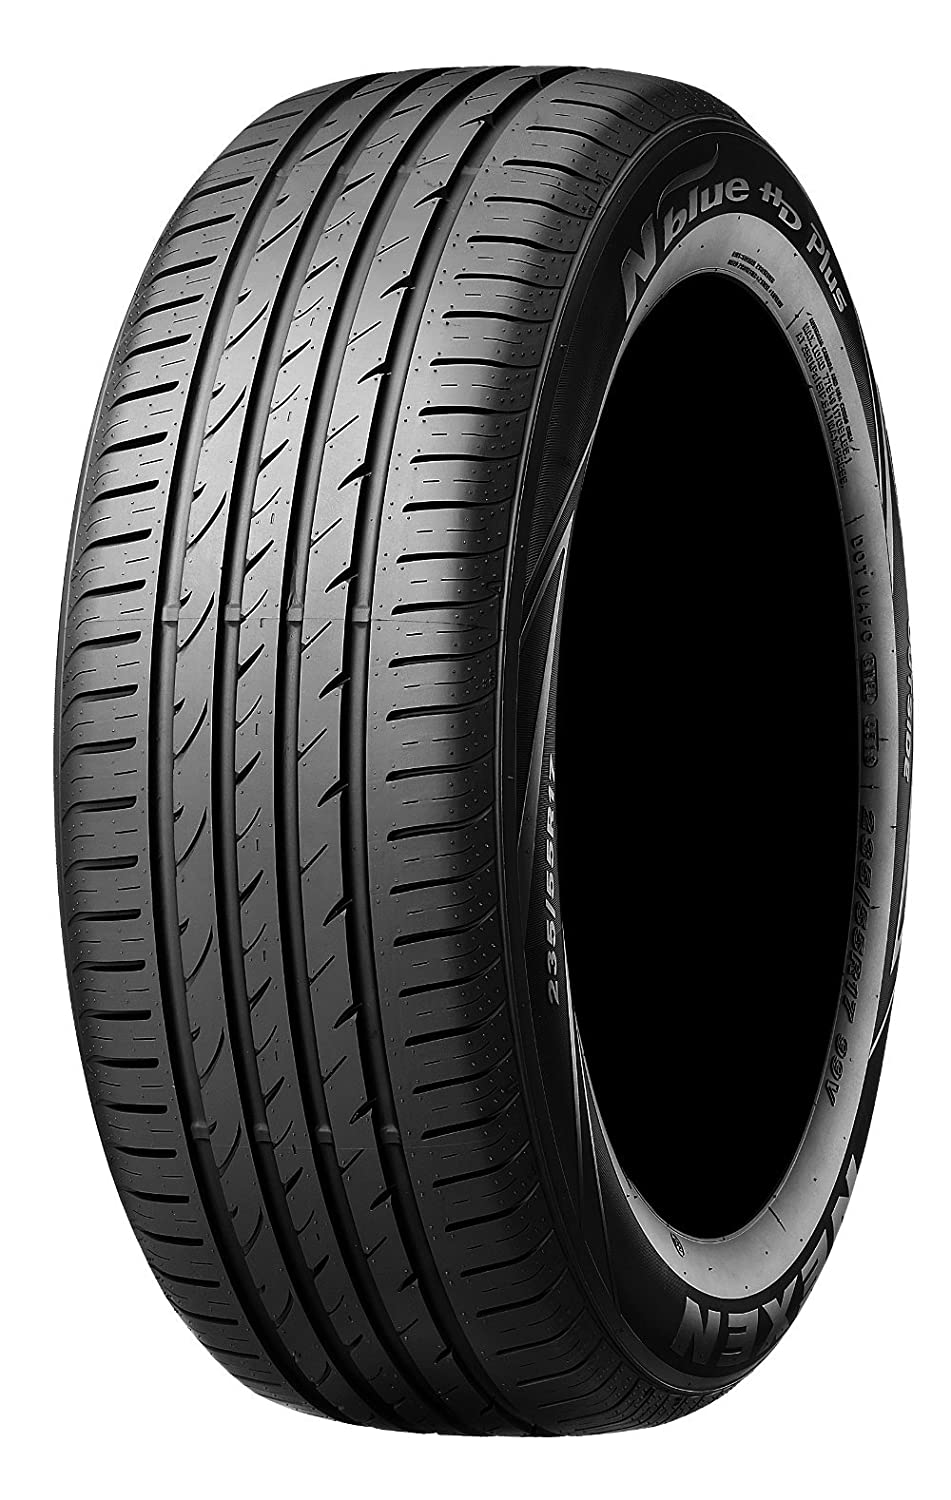 Nexen N blue HD Plus - 175/55/R15 77T - E/B/70 - Pneumatico Estivos N' BLUE HD PLUS